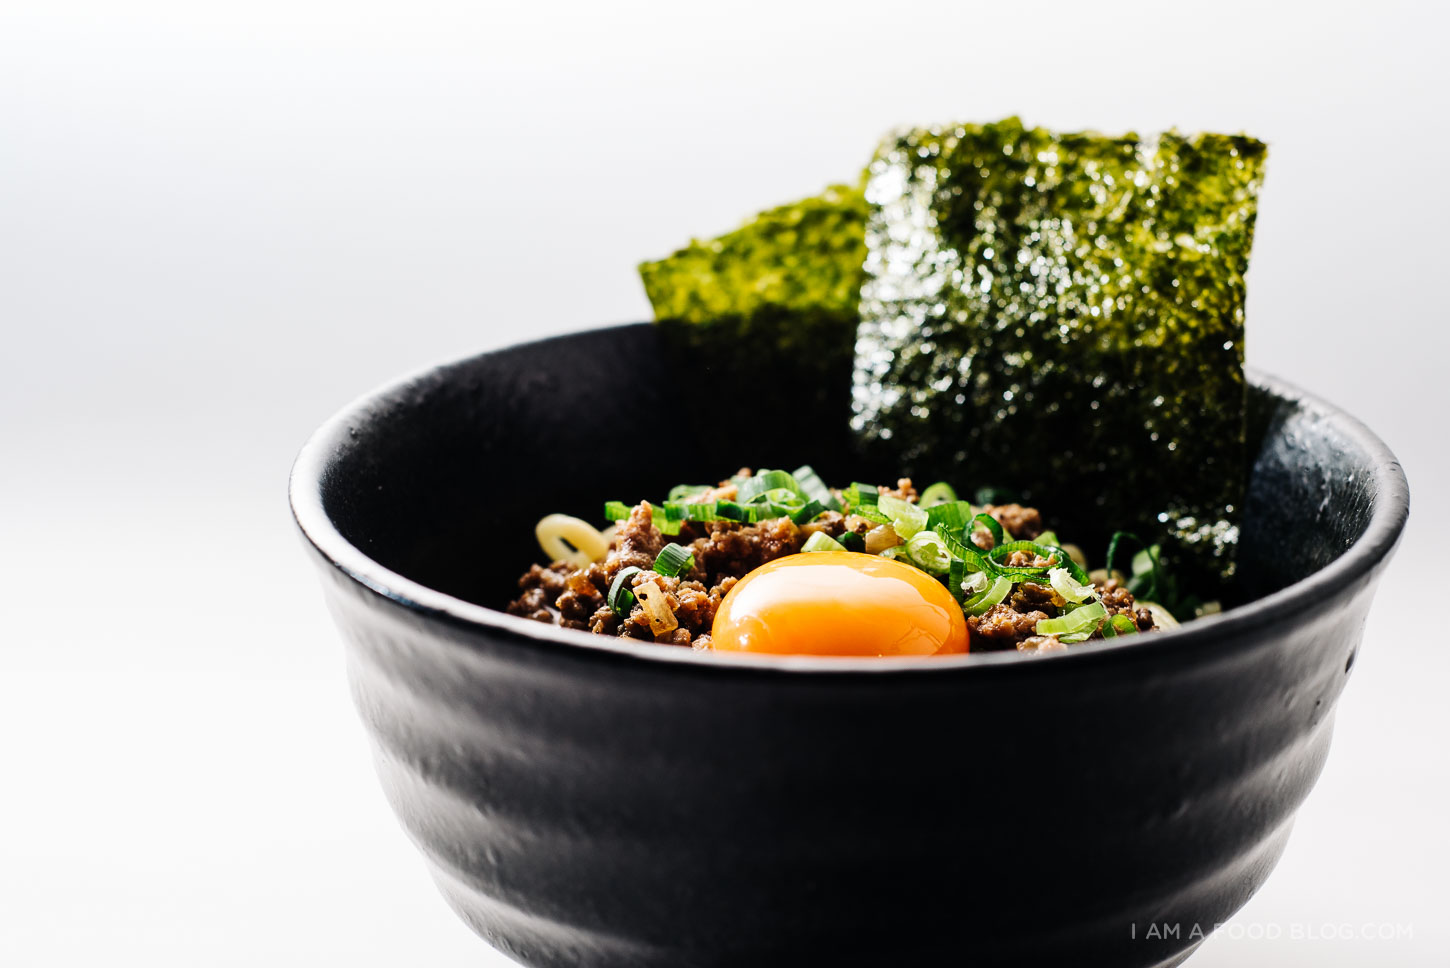 mazemen: broth-less japanese ramen with ginger garlic beef, miso gravy and eggs - www.iamafoodblog.com